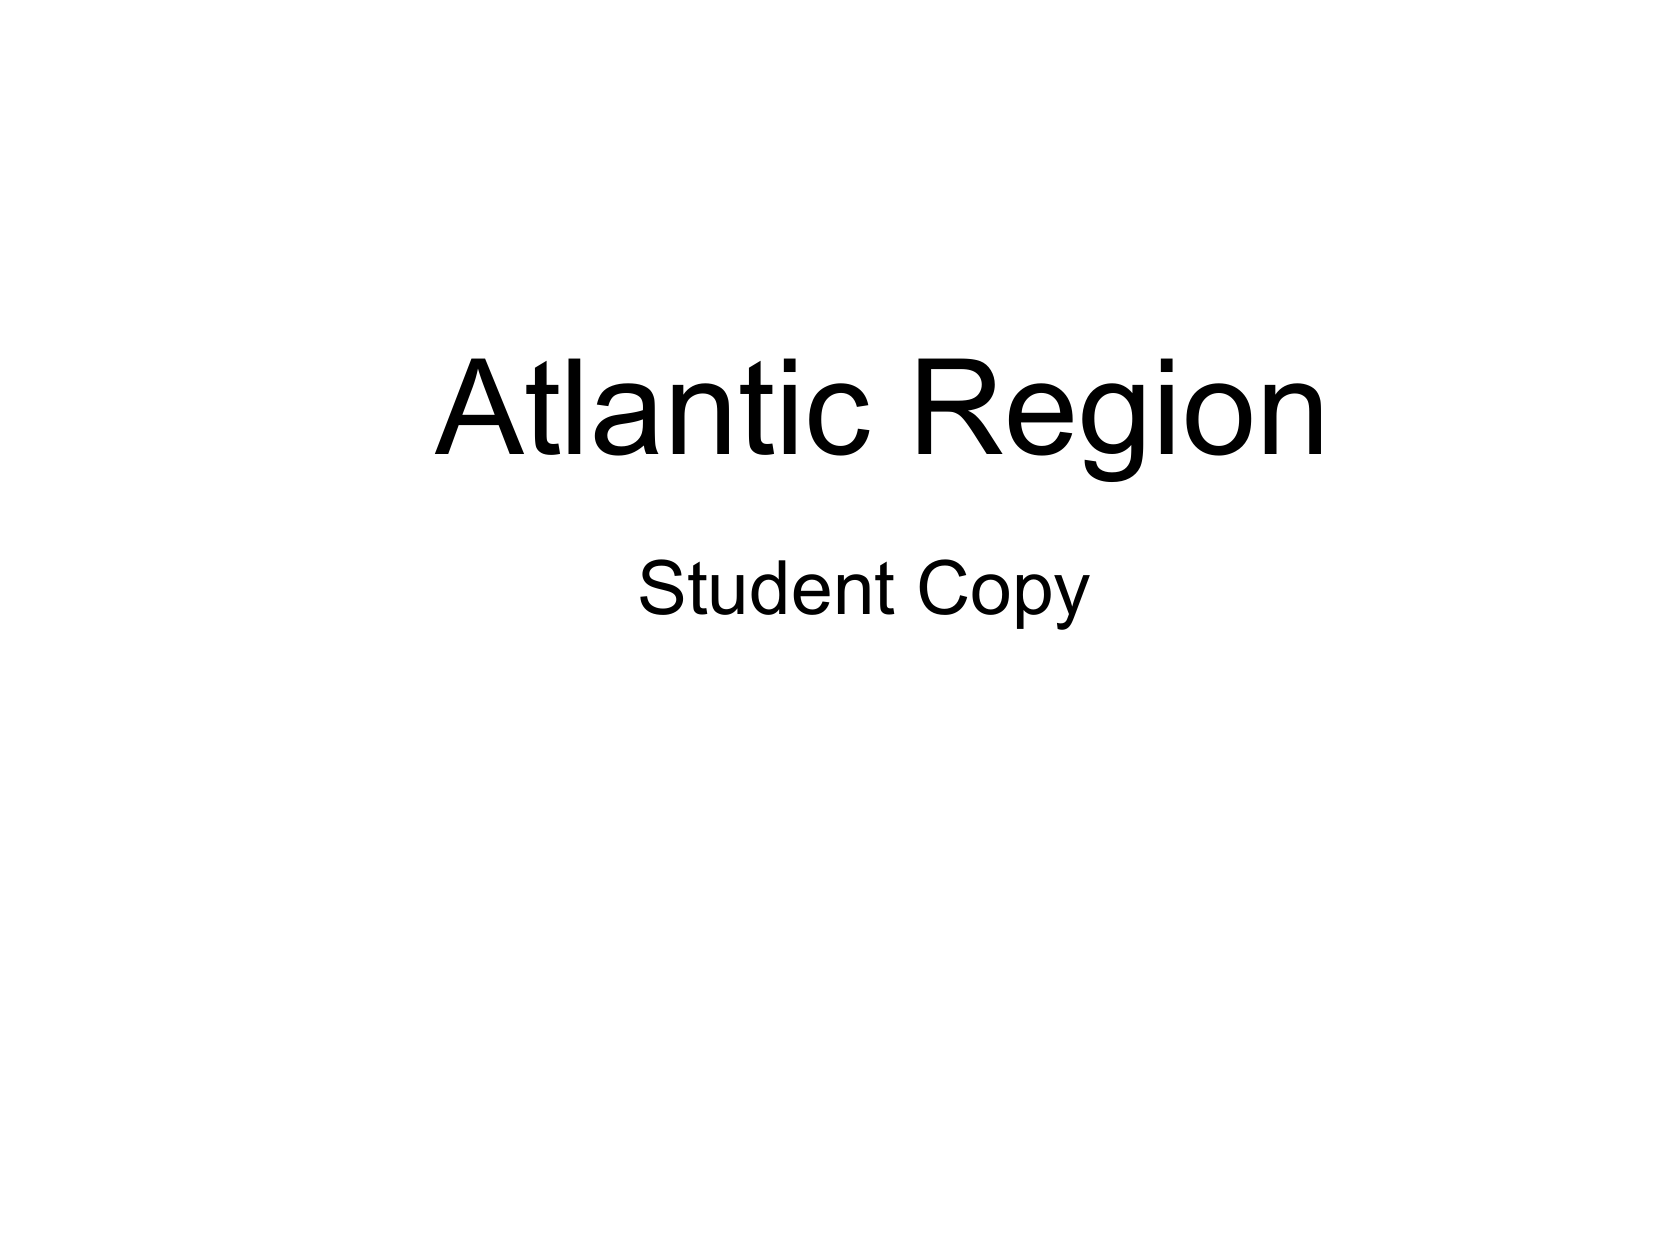 Atlantic Region Student Copy Resource Preview